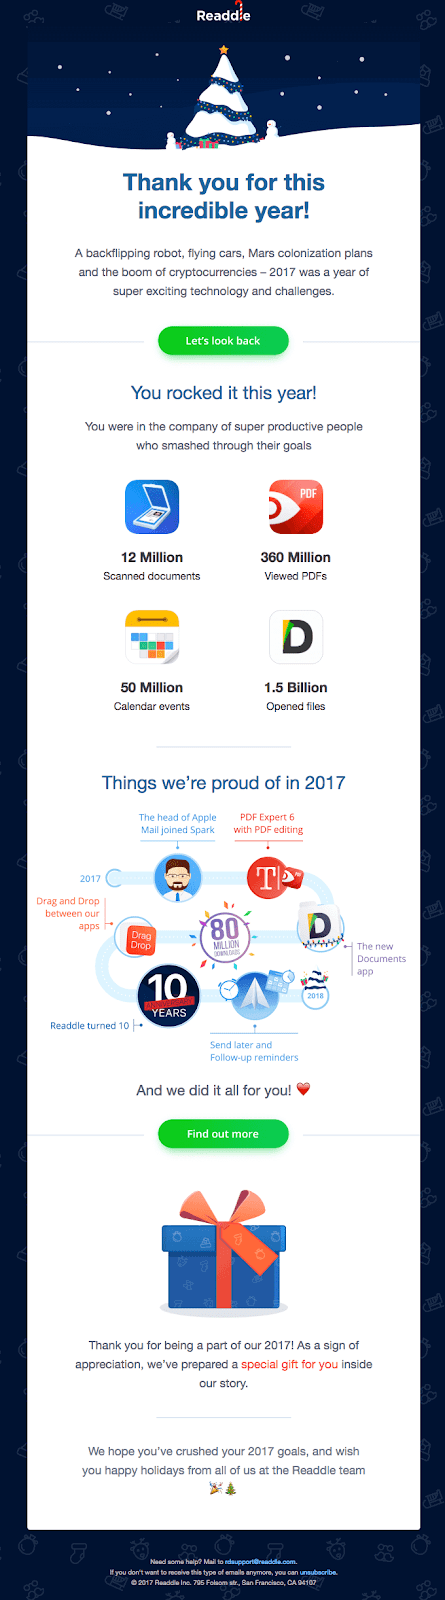 Readdle takes it a step further by sending their leads a yearly retrospective email, thanking them for being a part of the company's success over the past year.